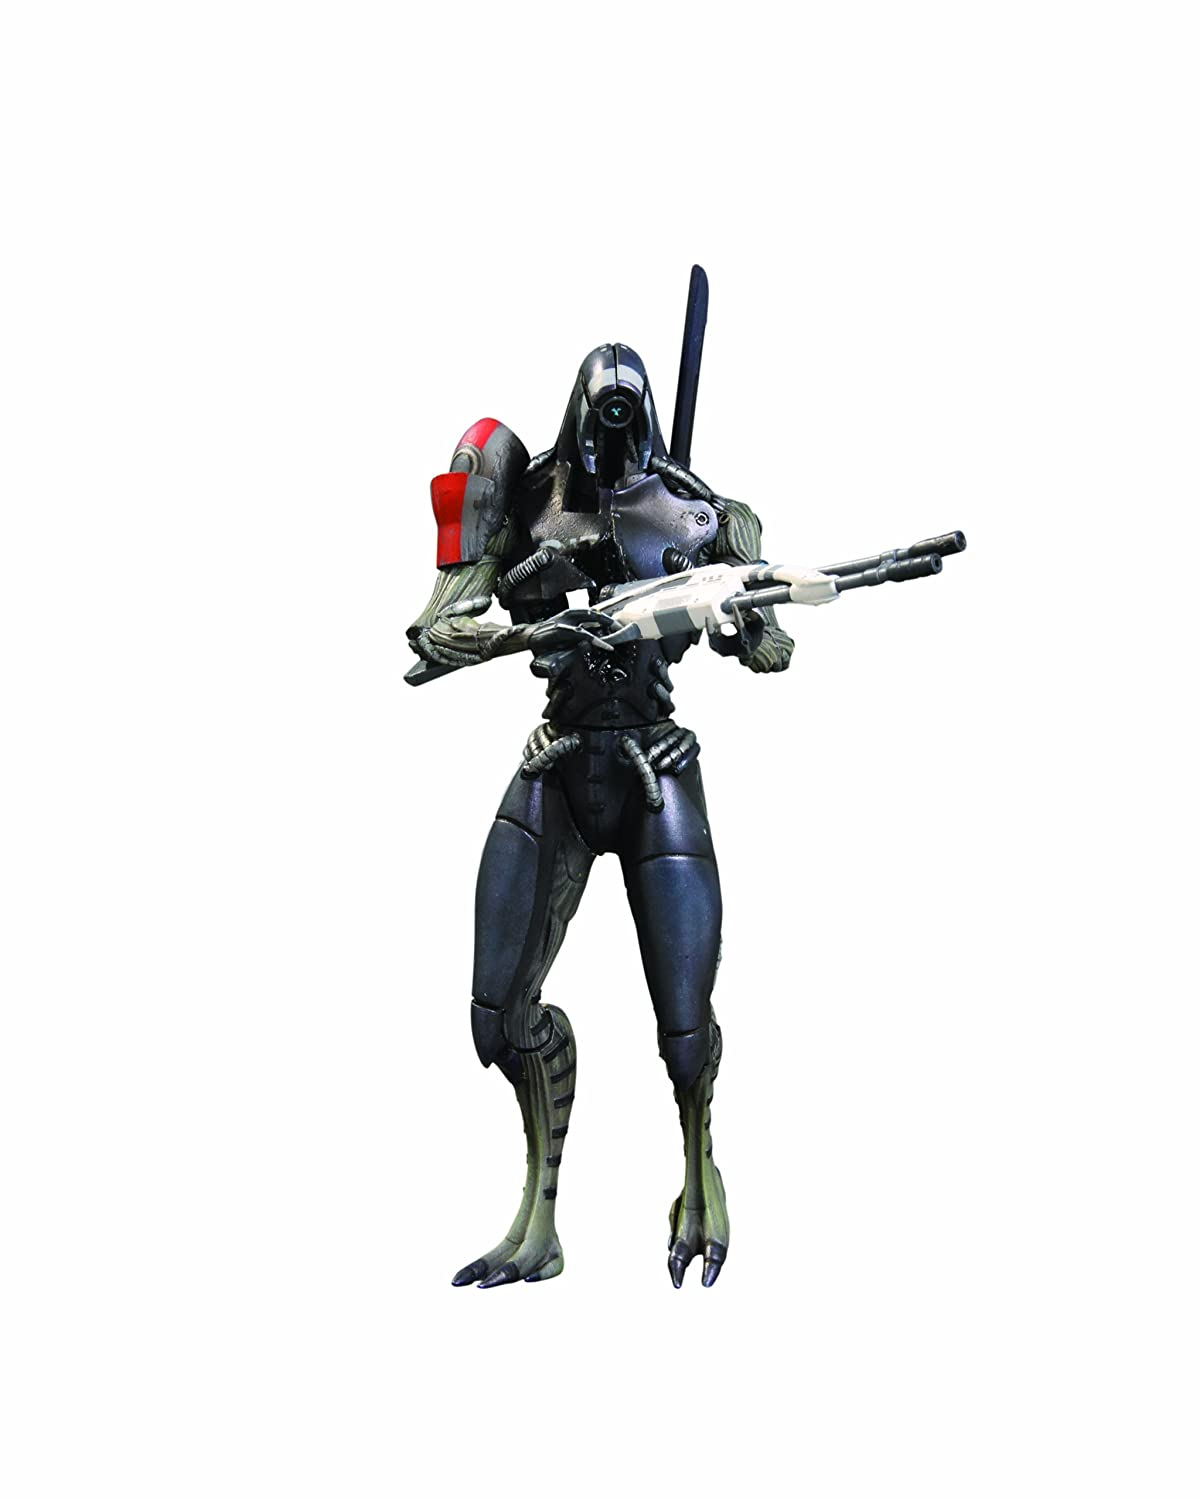 Buy Big Fish Toys Mass Effect 3 Series 2 Legion Action Figure